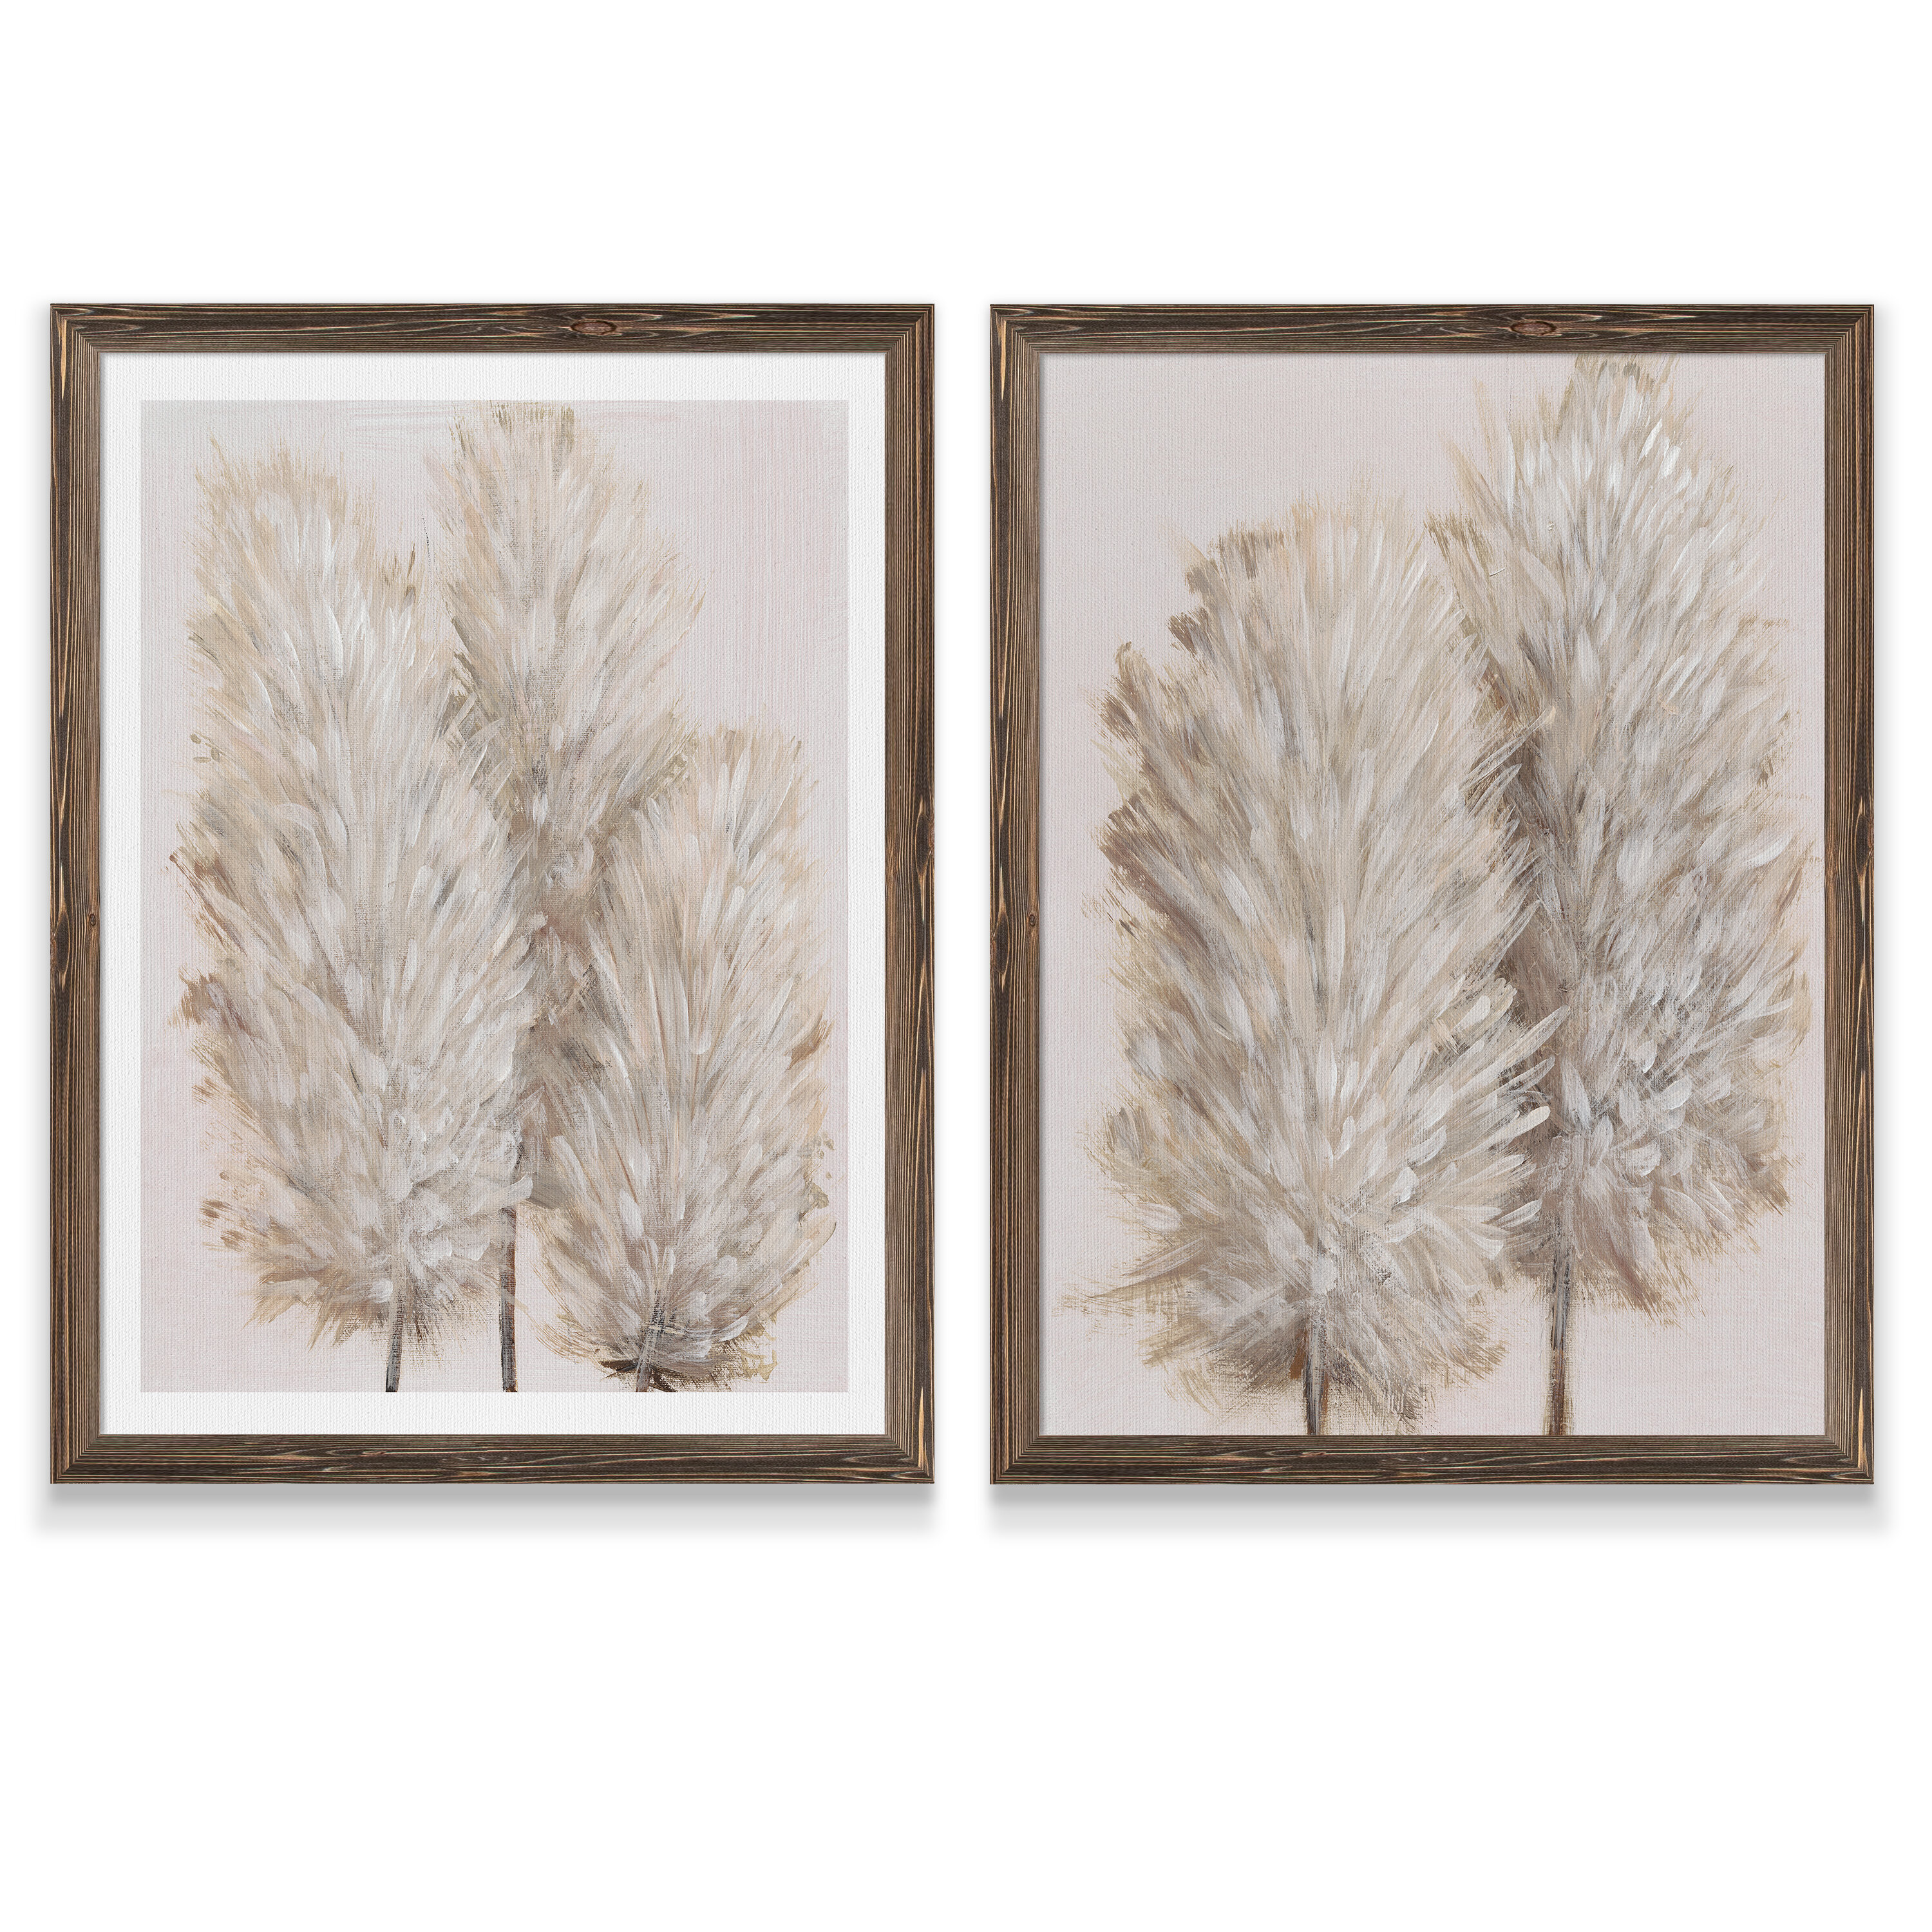 Ophelia Co Pampas Grass Iii By Vincent Van Gogh 2 Piece Picture Frame Painting Print Set Reviews Wayfair